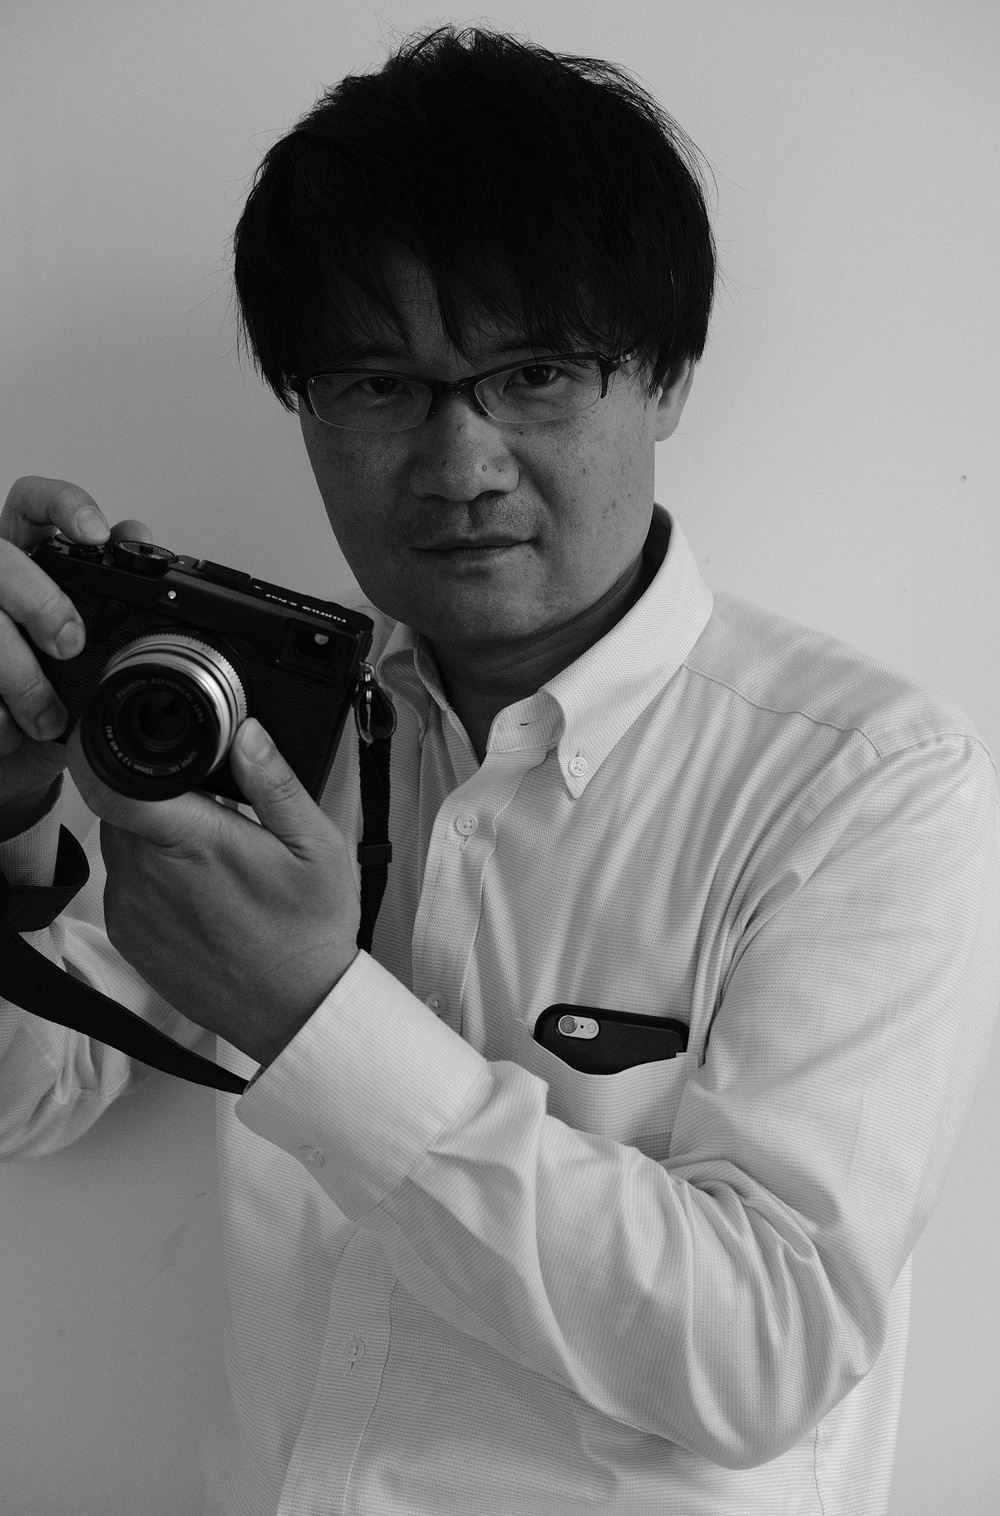 Takashi Ueno, Fujifilm product planner. ©2016 Fujifilm.  Image used with permission.